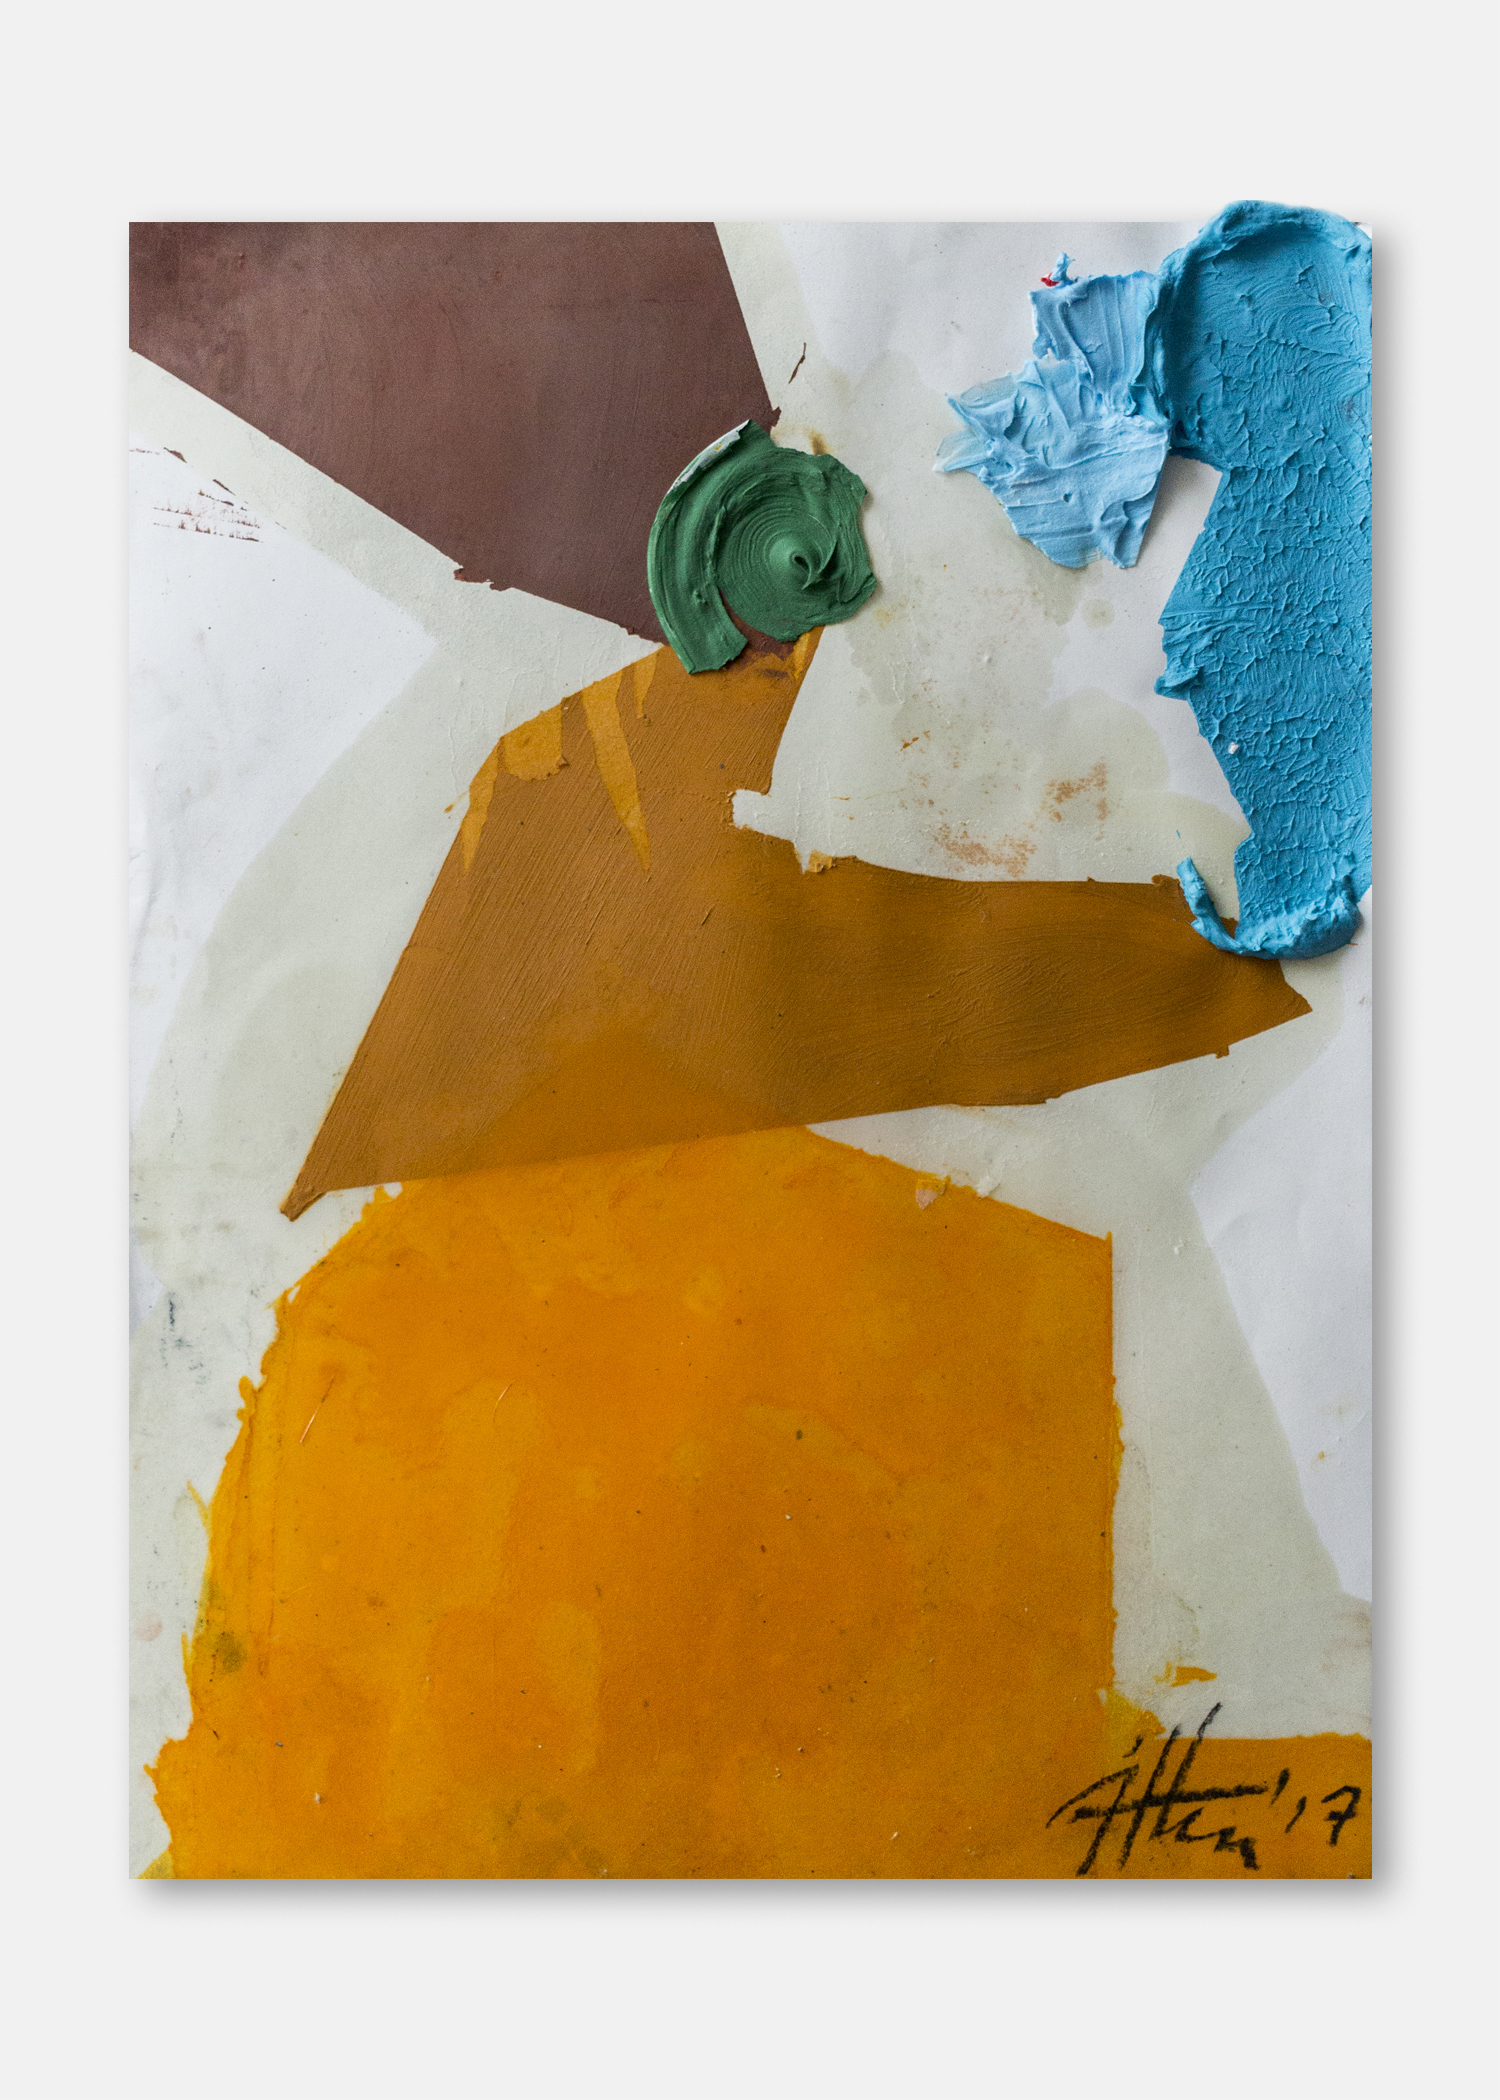 Untitled  Pigment, acrylic and collaged acrylic on paper  45.5 x 61 cm  24 x 18 in